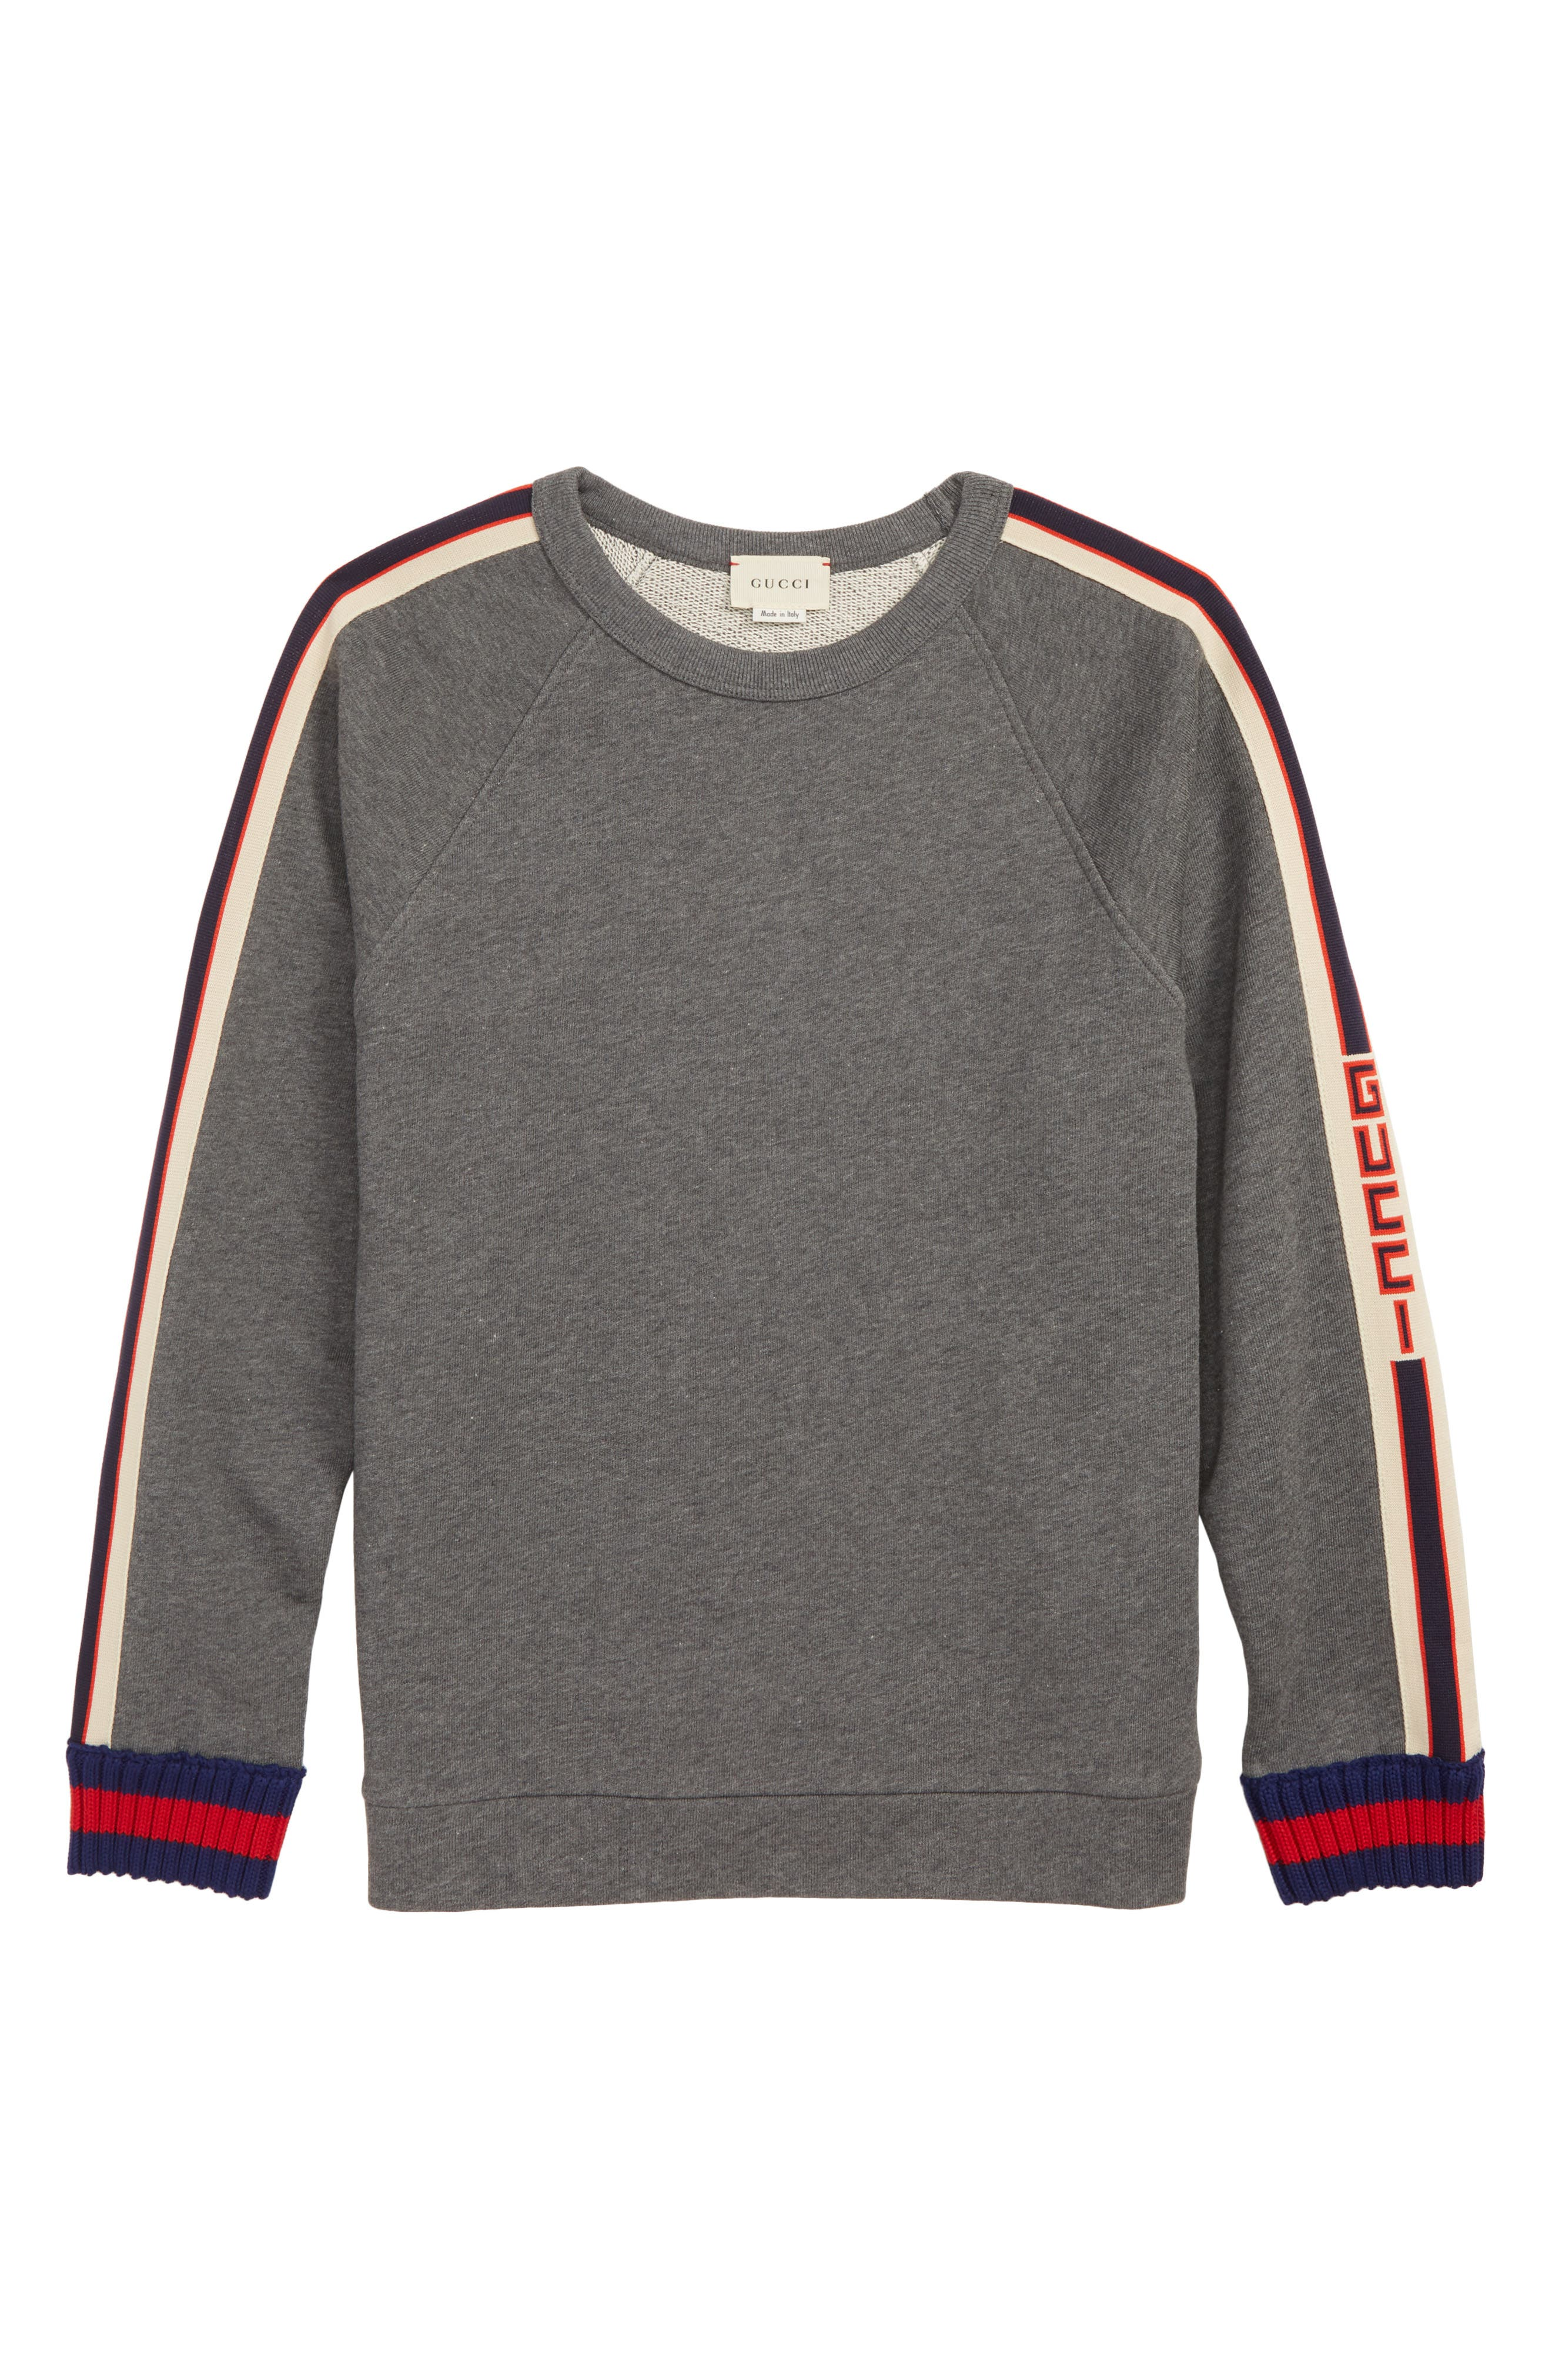 Stripe French Terry Sweatshirt,                         Main,                         color, MD GREY/ COBALT/ RED